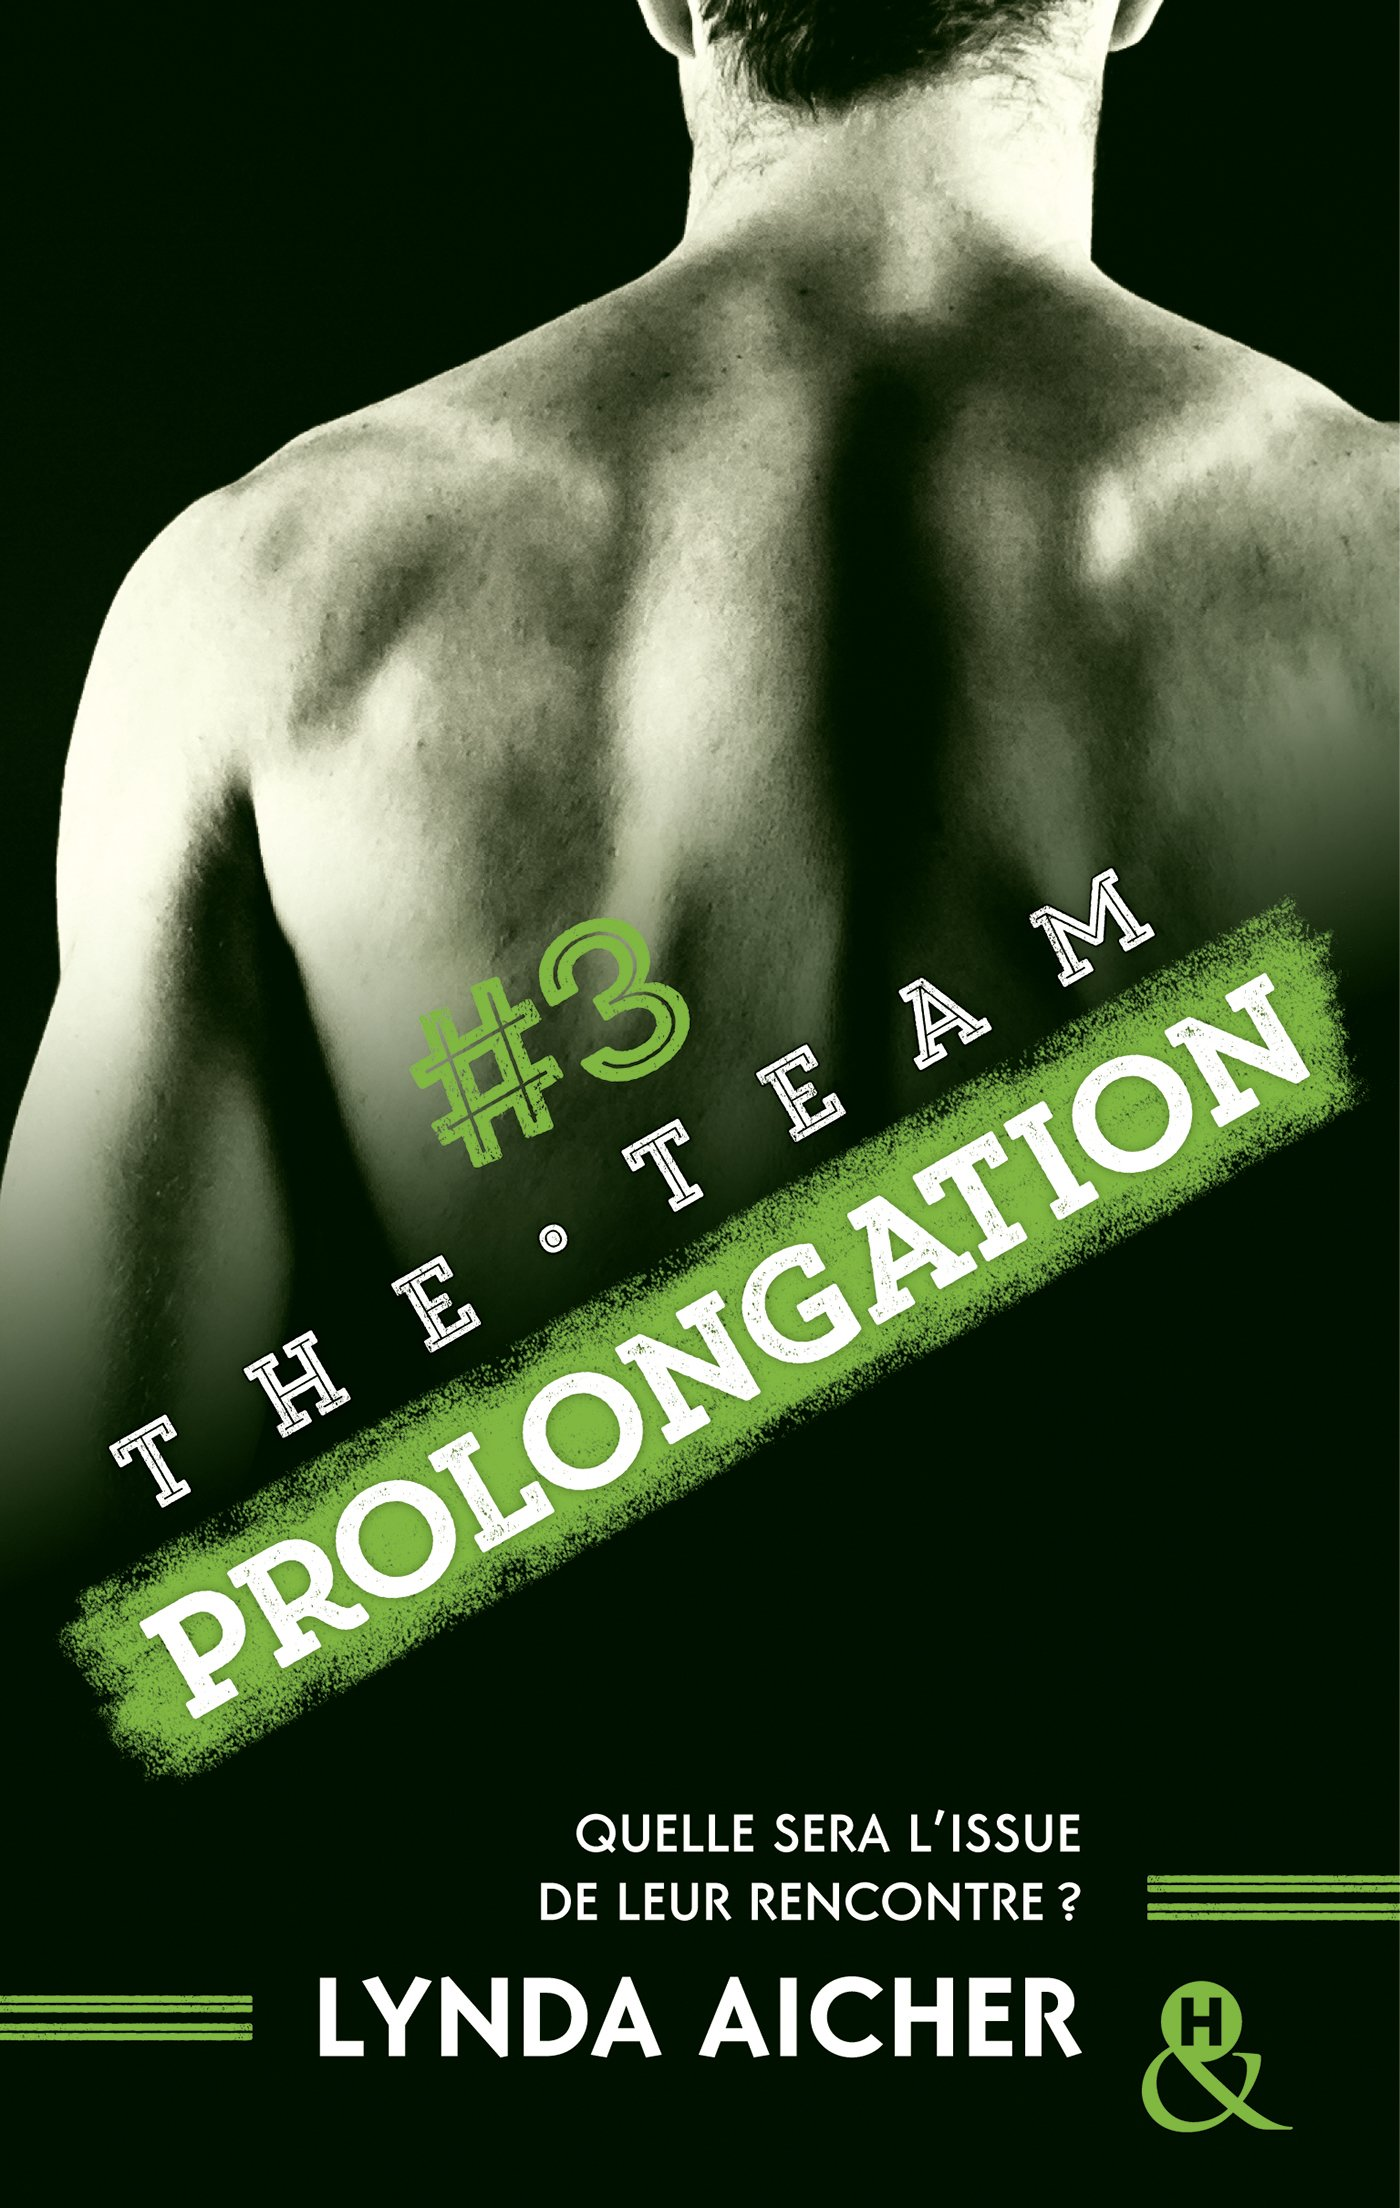 Couverture : LYNDA AICHER, #3 THE TEAM PROLONGATION, Harlequin